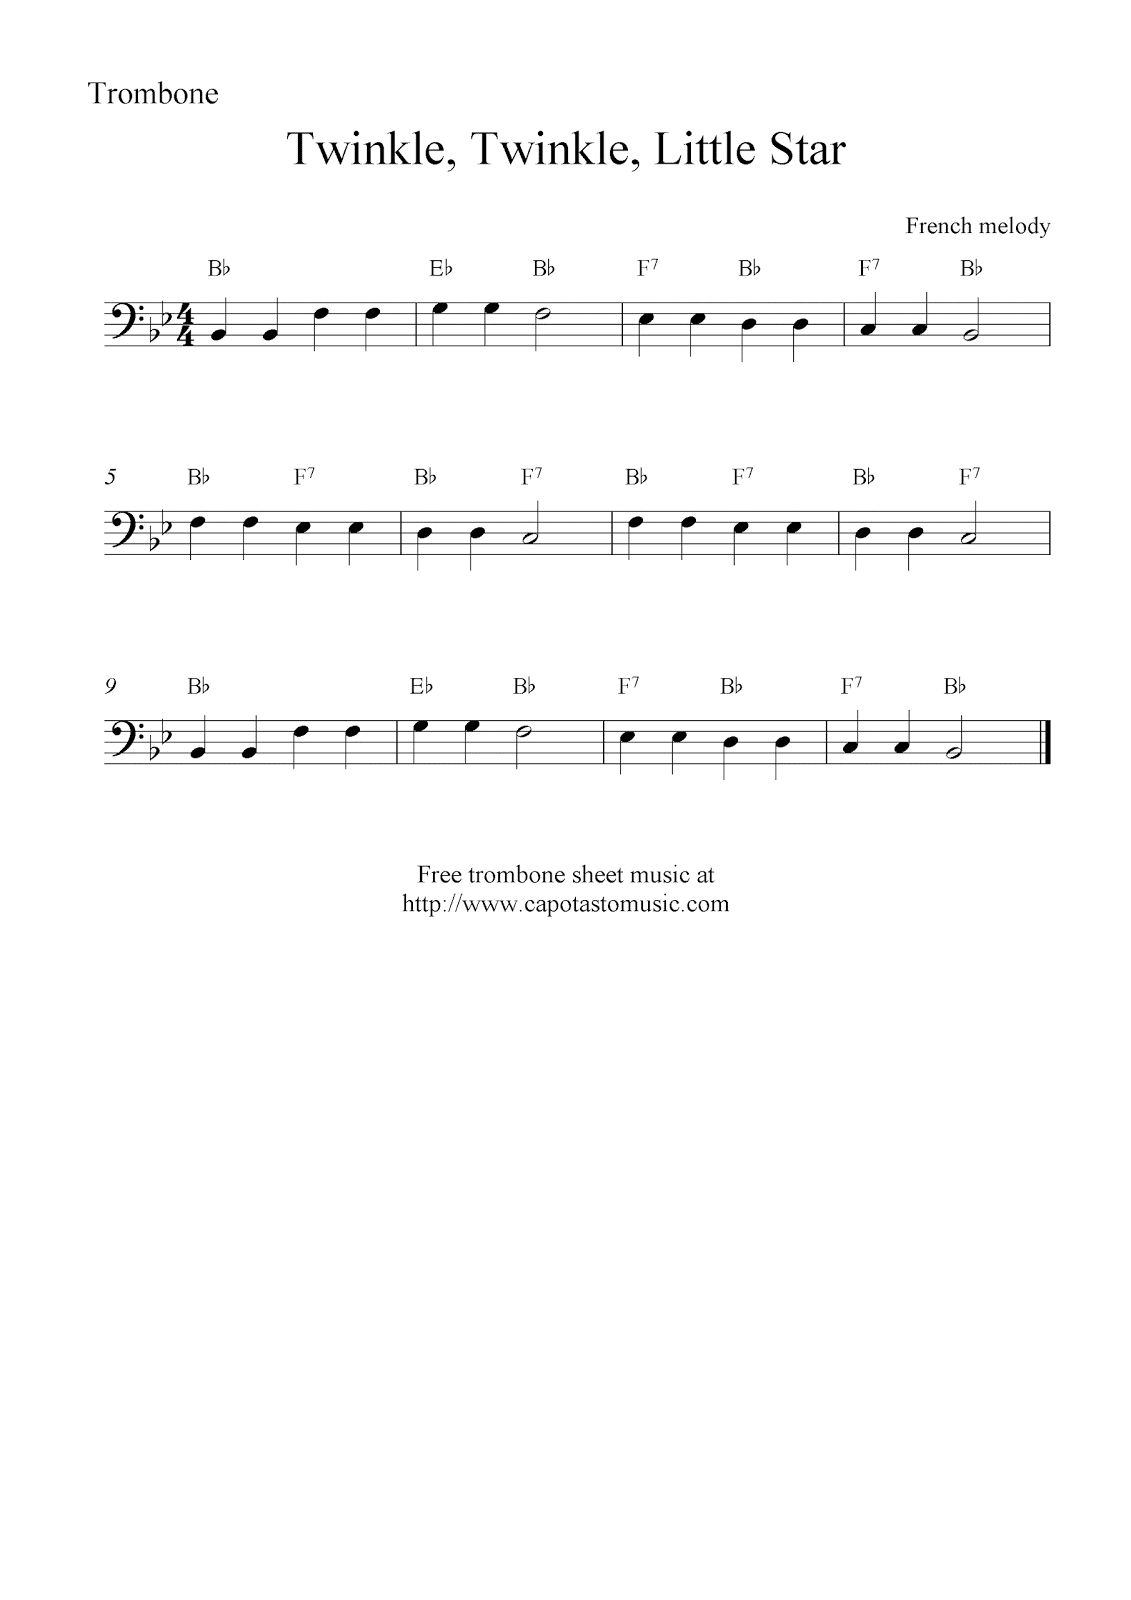 Twinkle, Twinkle, Little Star, Free Trombone Sheet Music Notes - Sheet Music For Trombone Free Printable